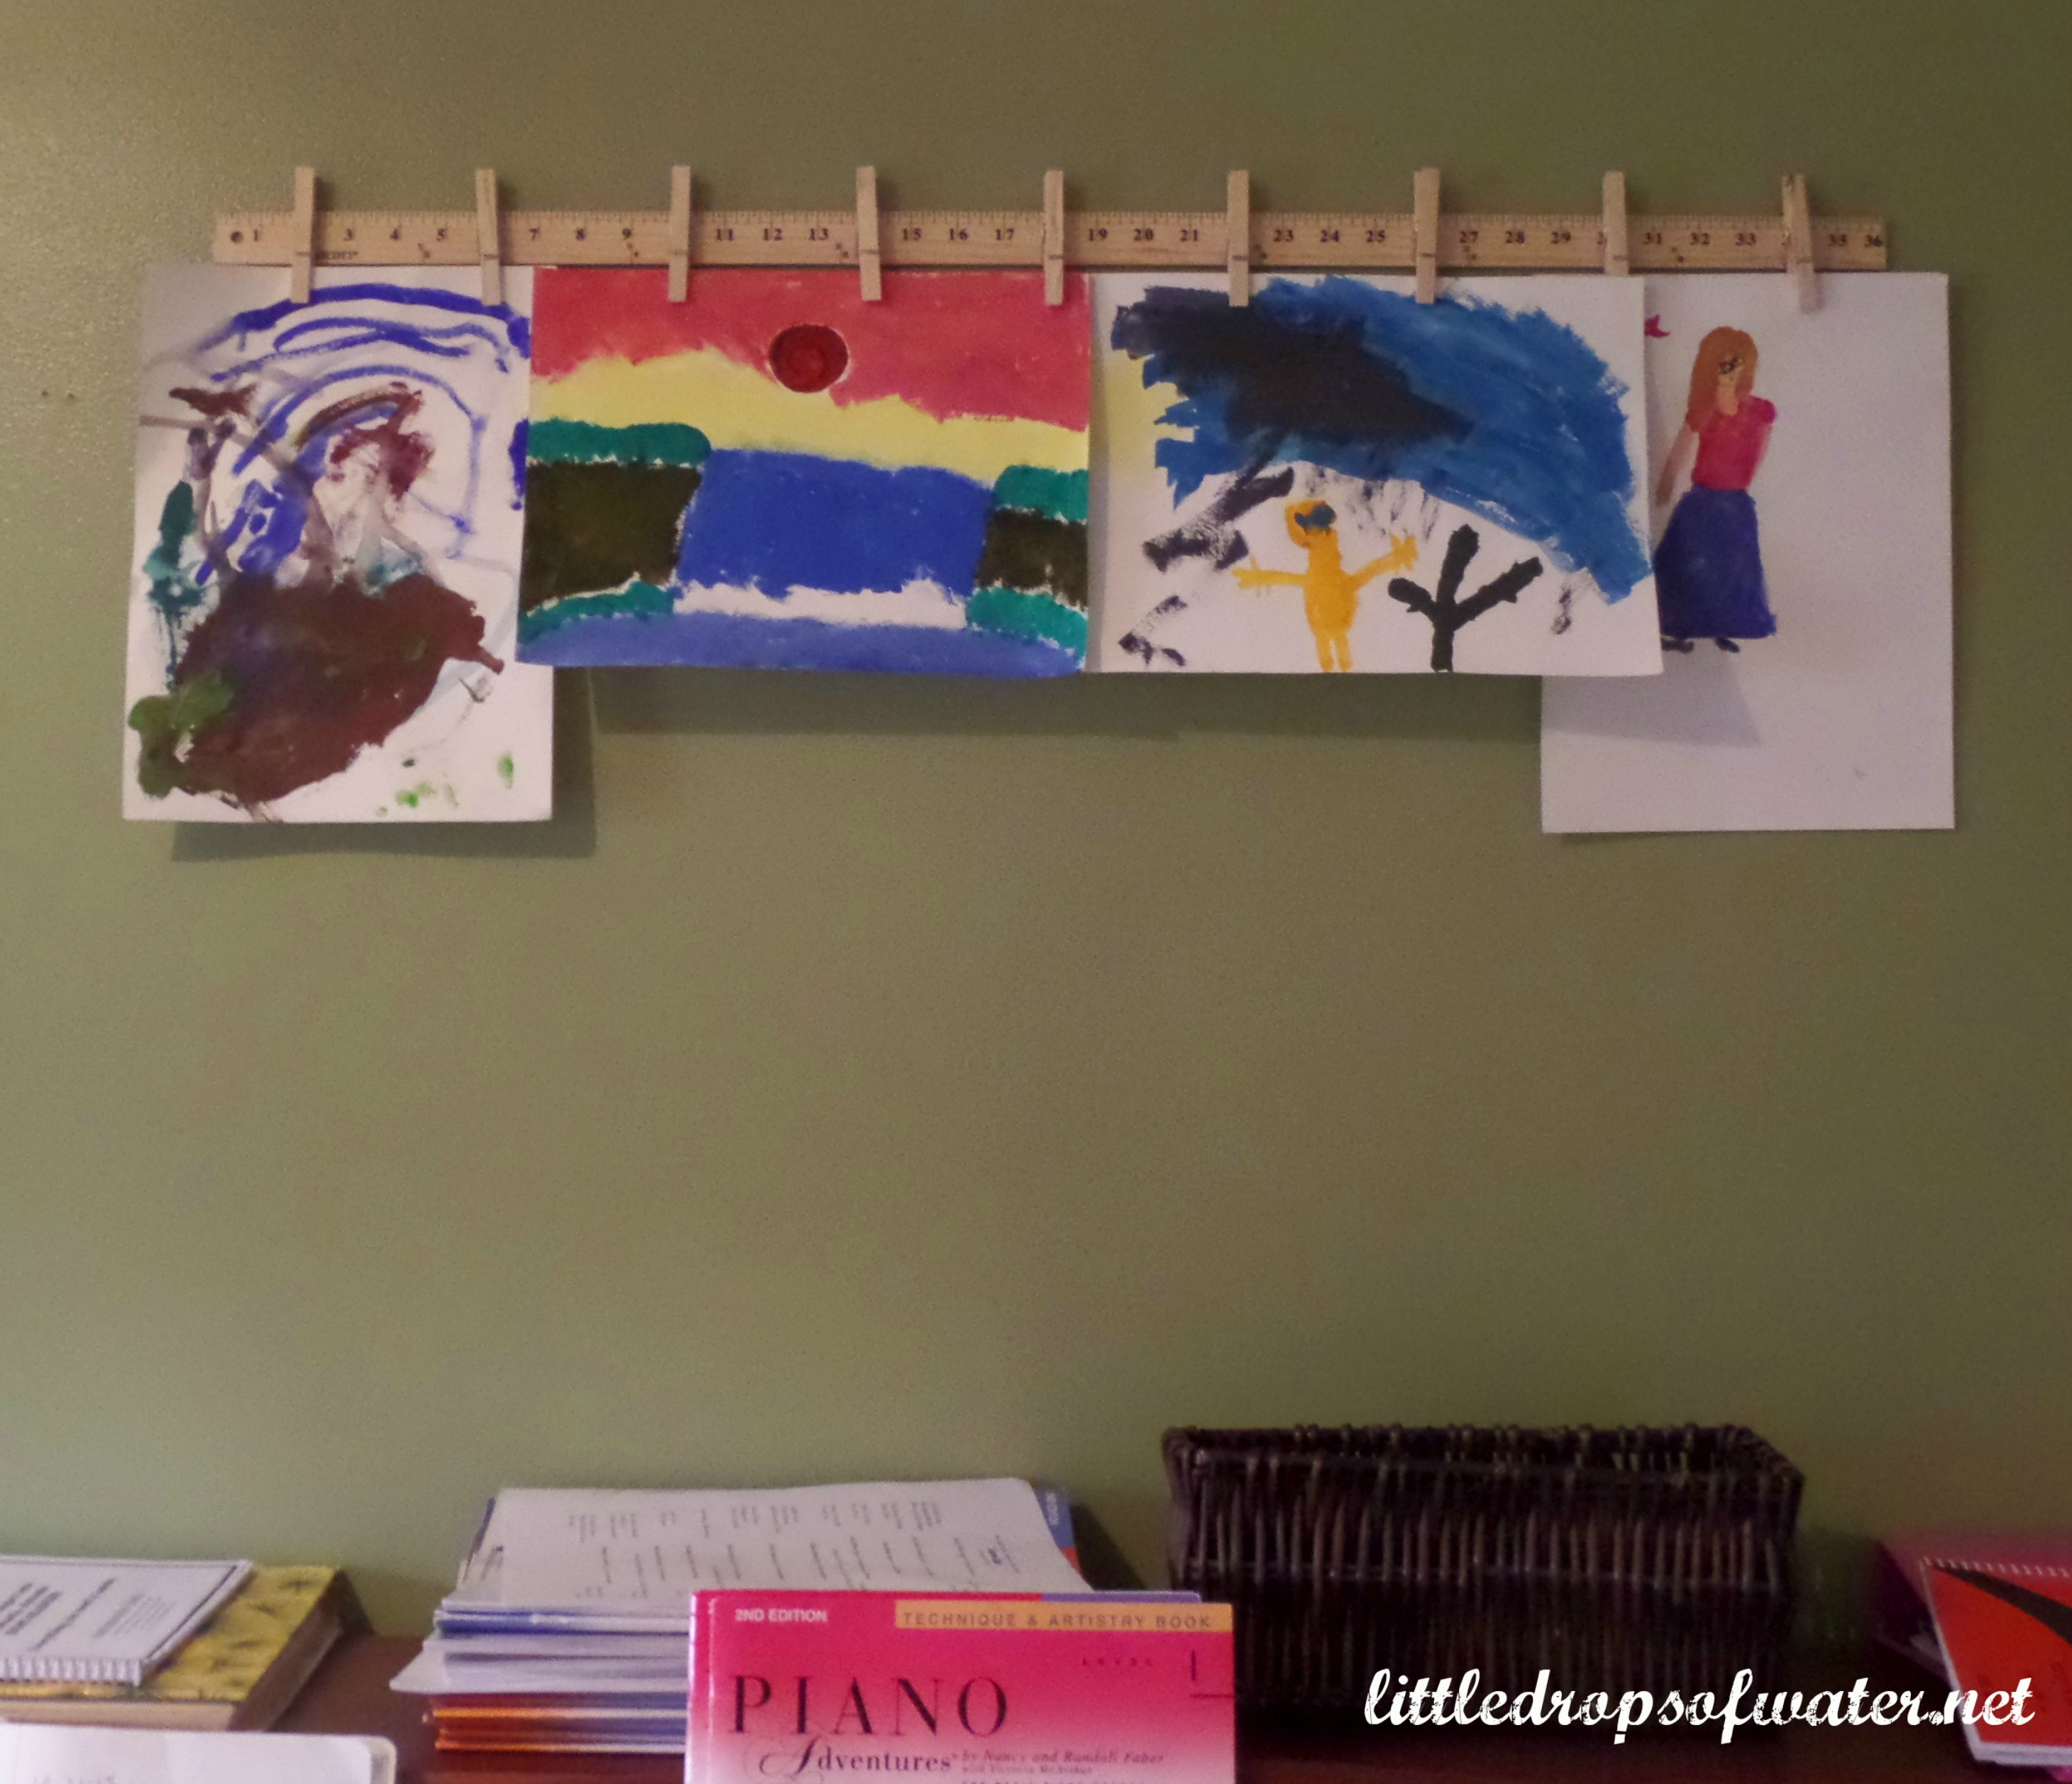 31 Days of Tackling the To-Do List: Kids' Art Display